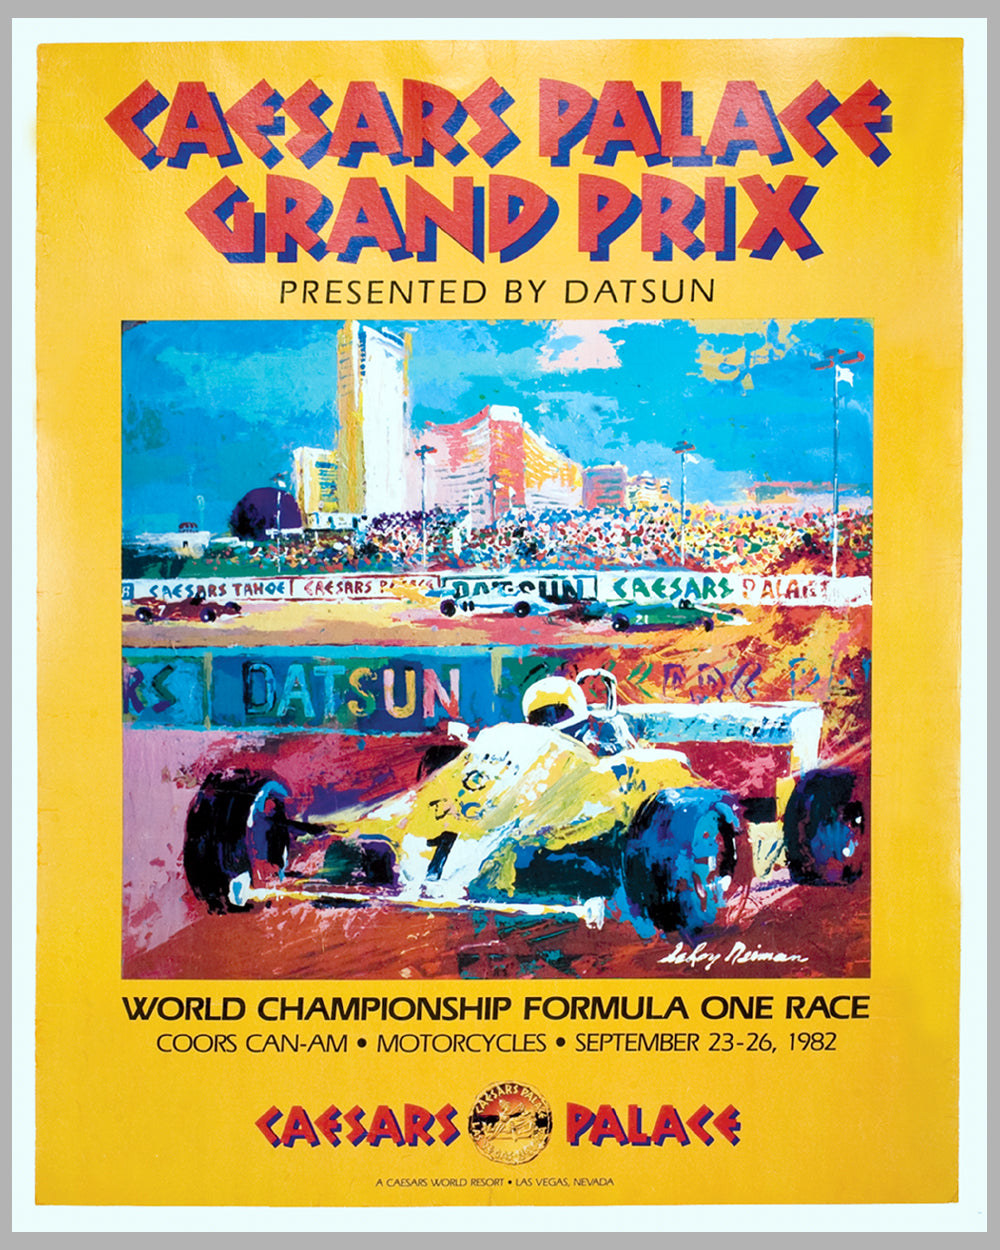 1982 Caesars Palace Grand Prix of Las Vegas original poster by LeRoy Neiman